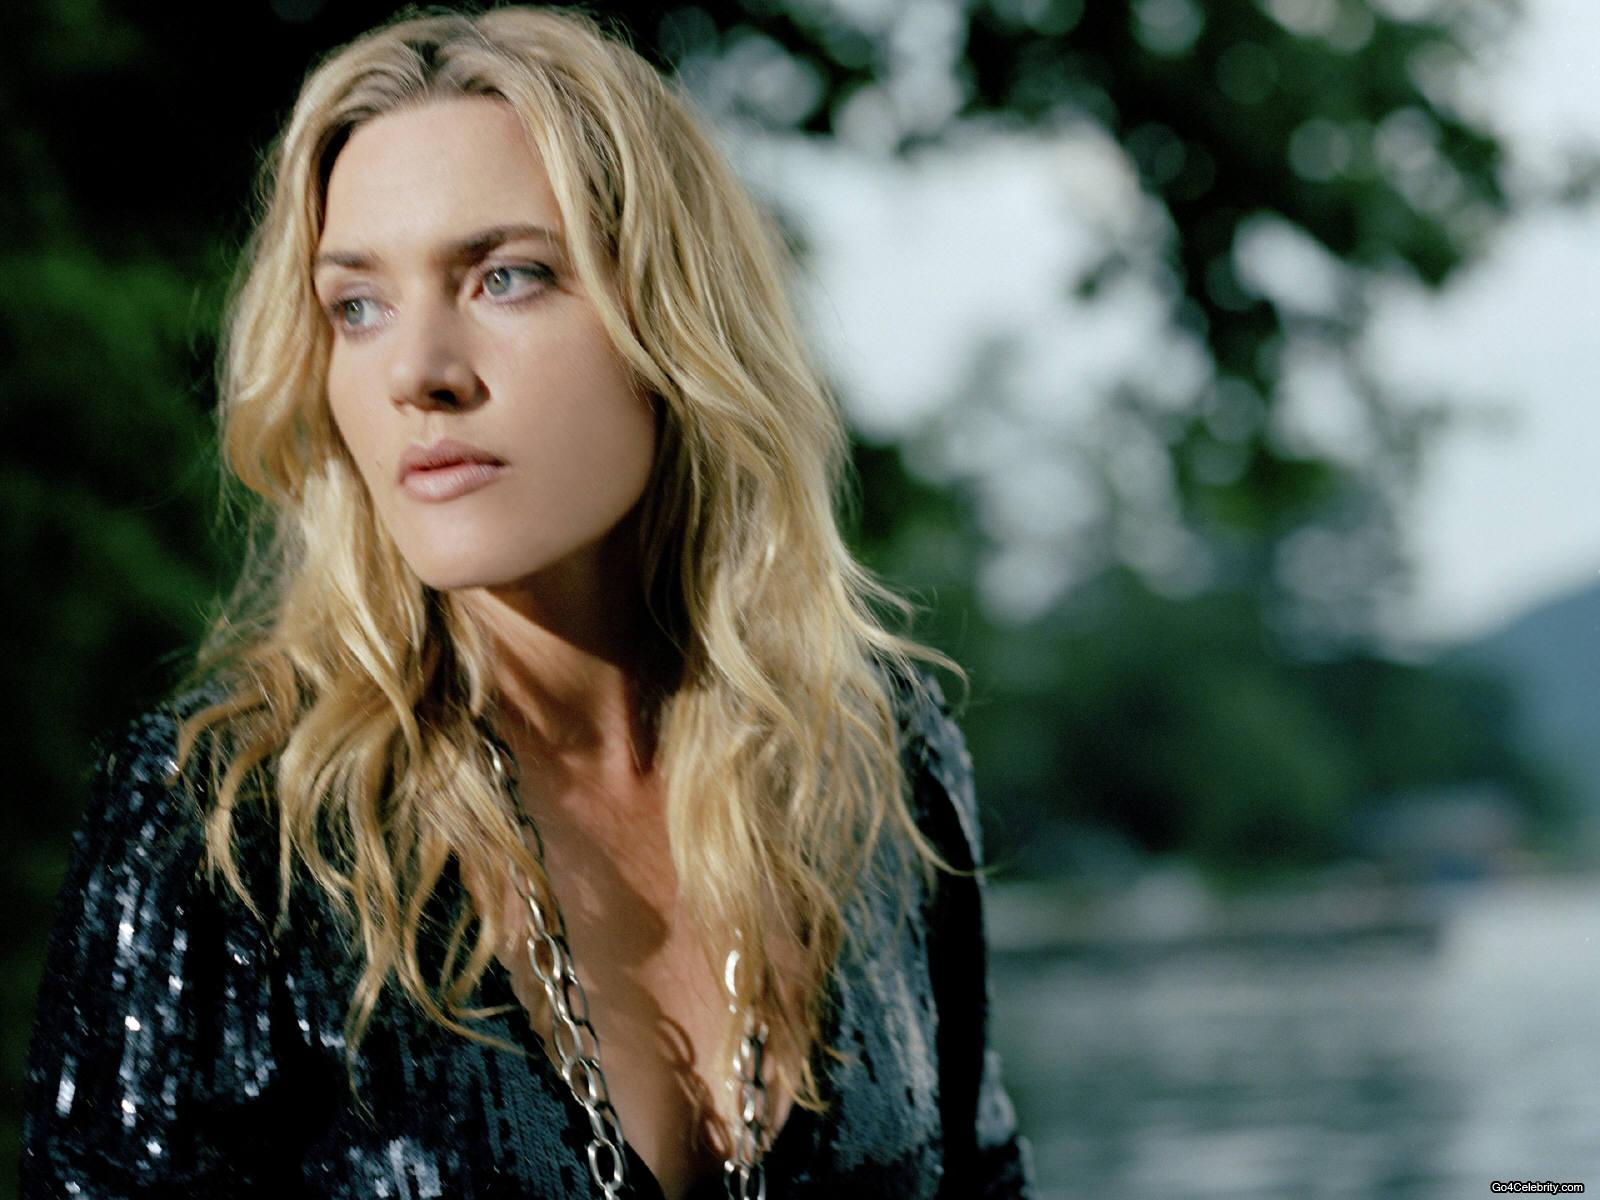 Kate Winslet: Kate Winslet Hd Wallpapers